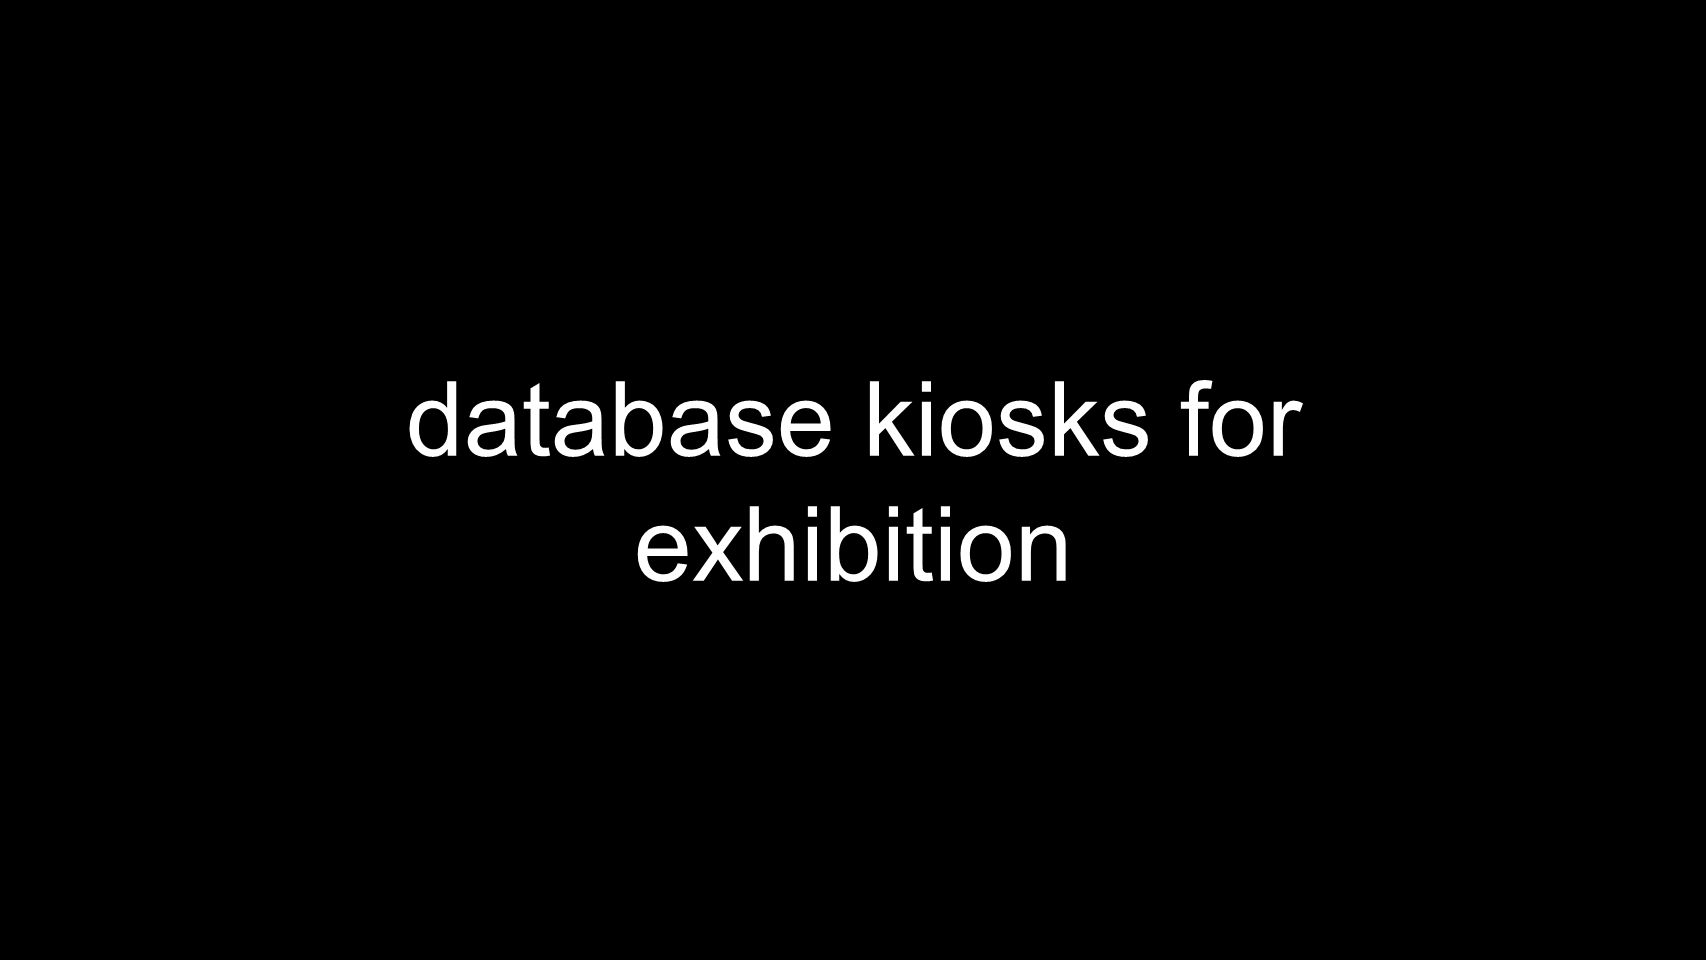 database kiosks for exhibition